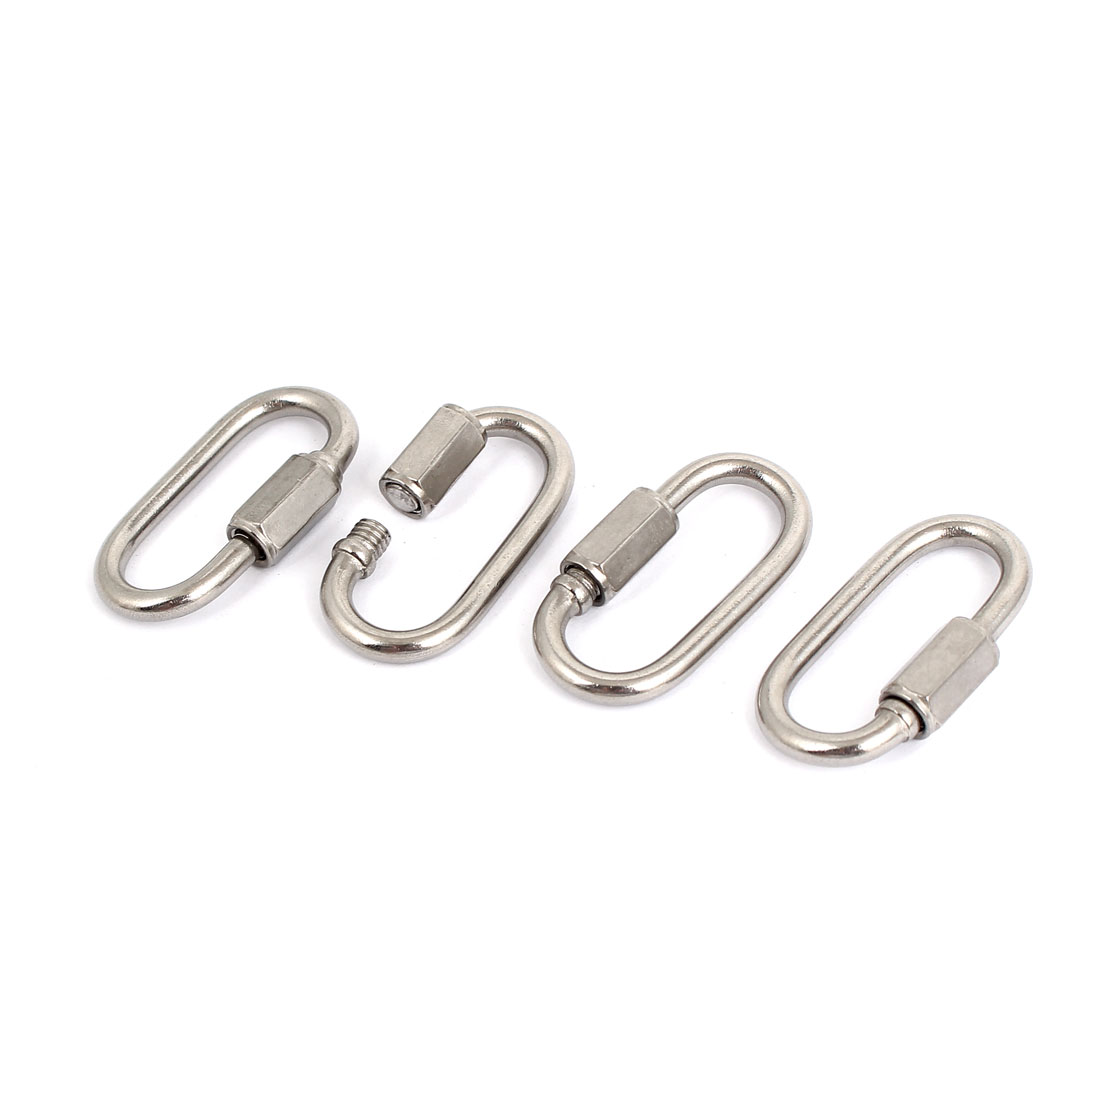 3.5mm Thickness Stainless Steel Quick Oval Screwlock Link Lock Carabiner 4 Pcs